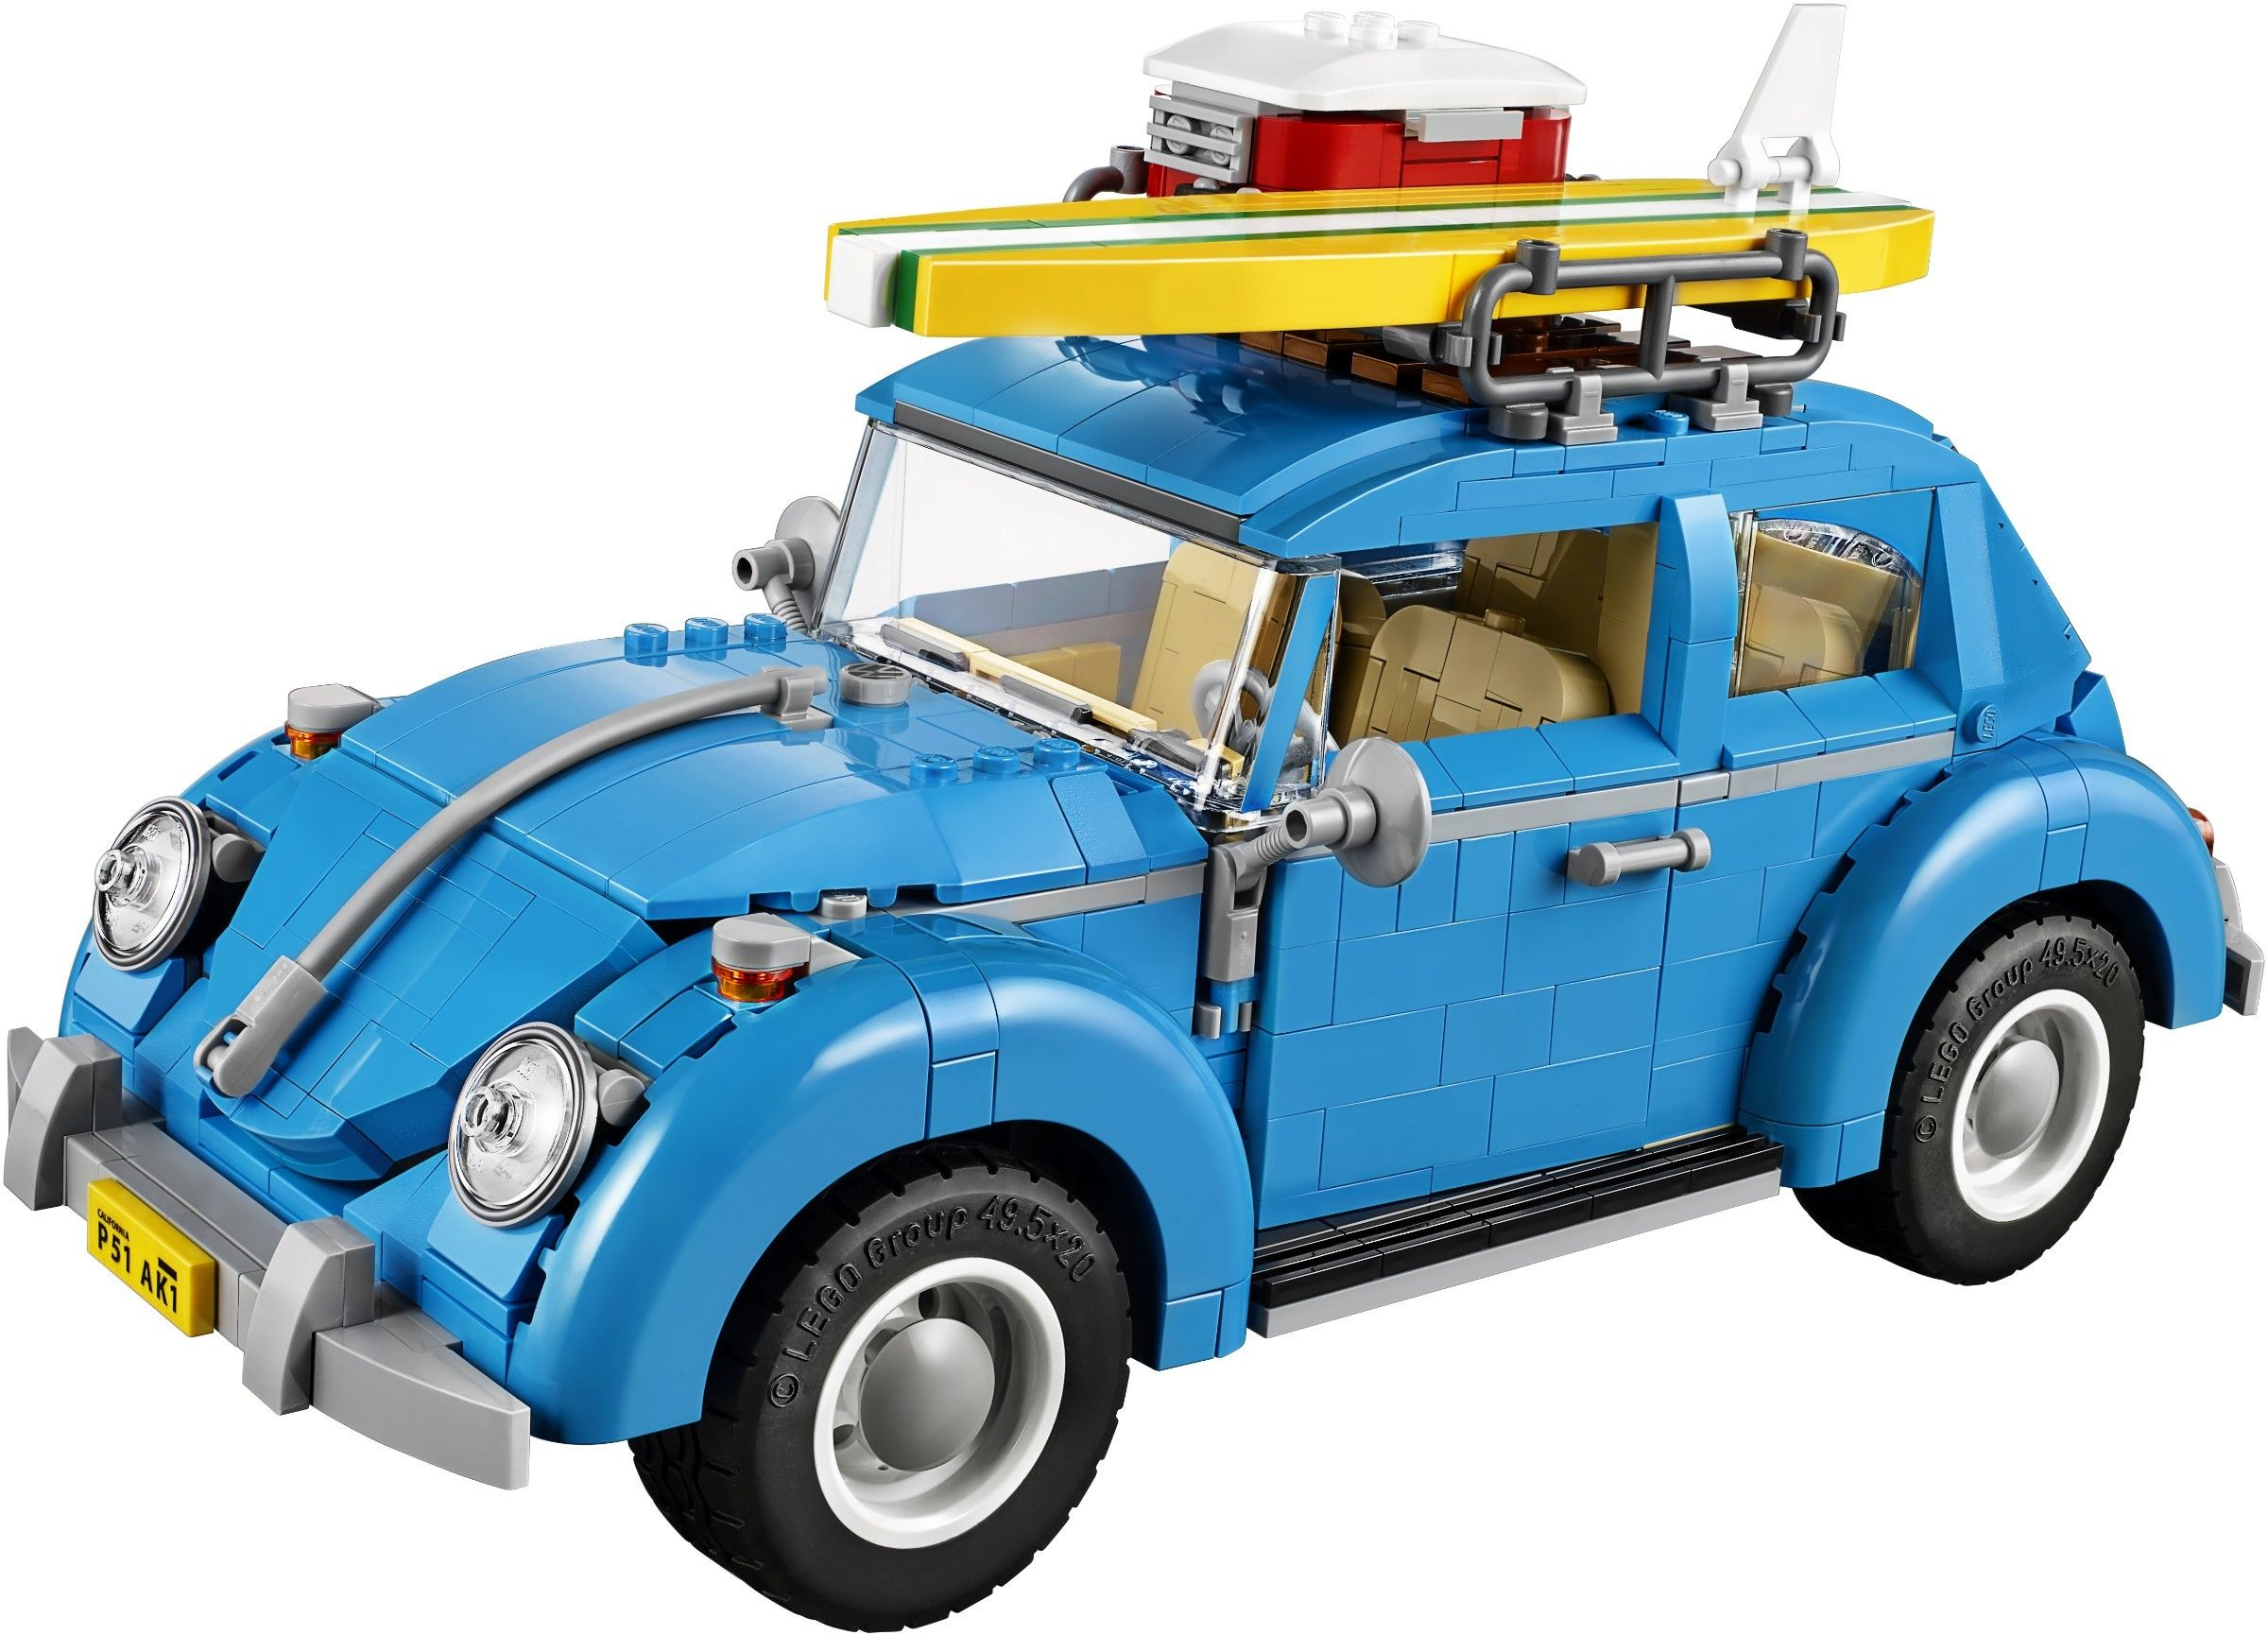 Lego car toys   Volkswagen Beetle  Lego Legos and Lego creations